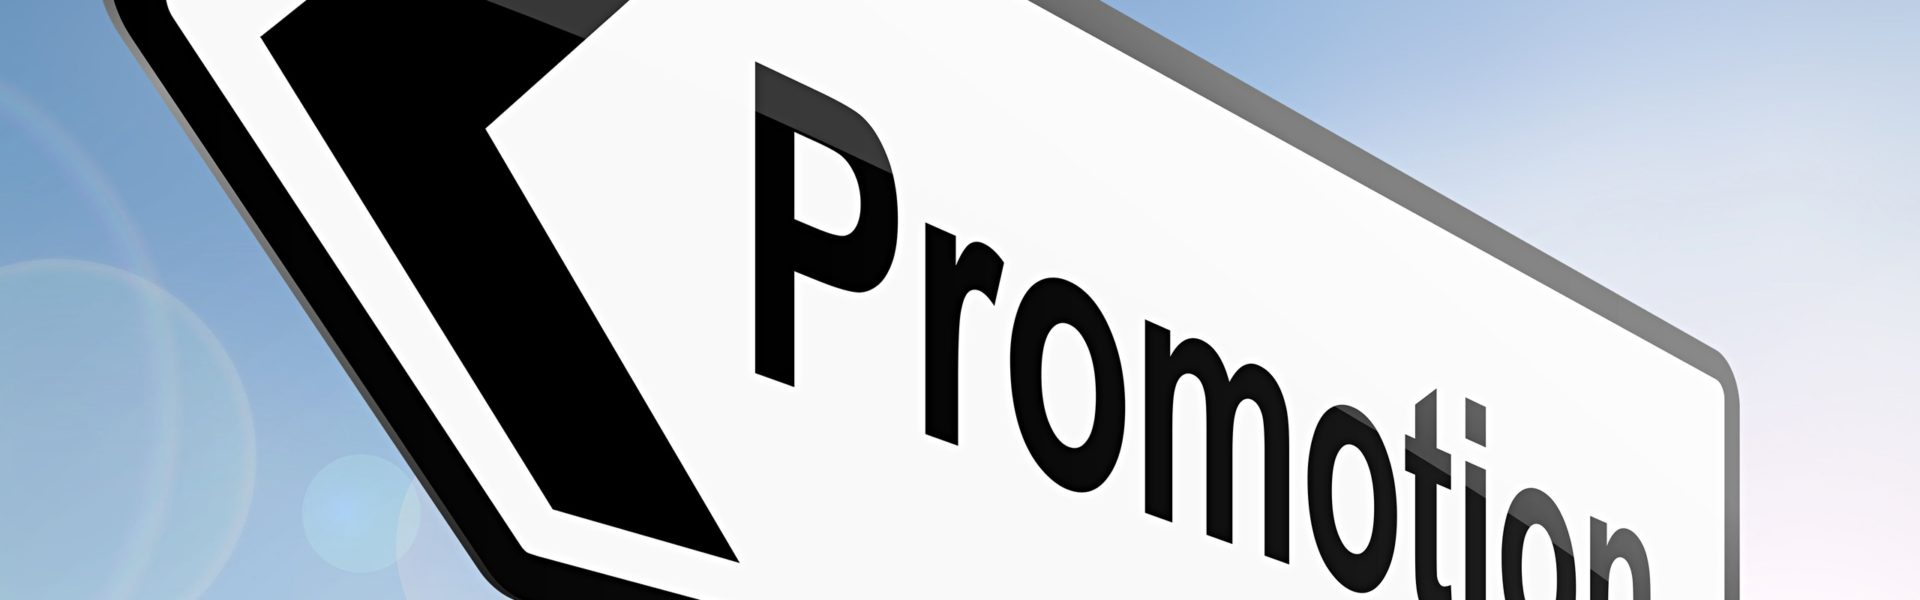 Use Promotional Items at Trade Shows to Promote Your Business